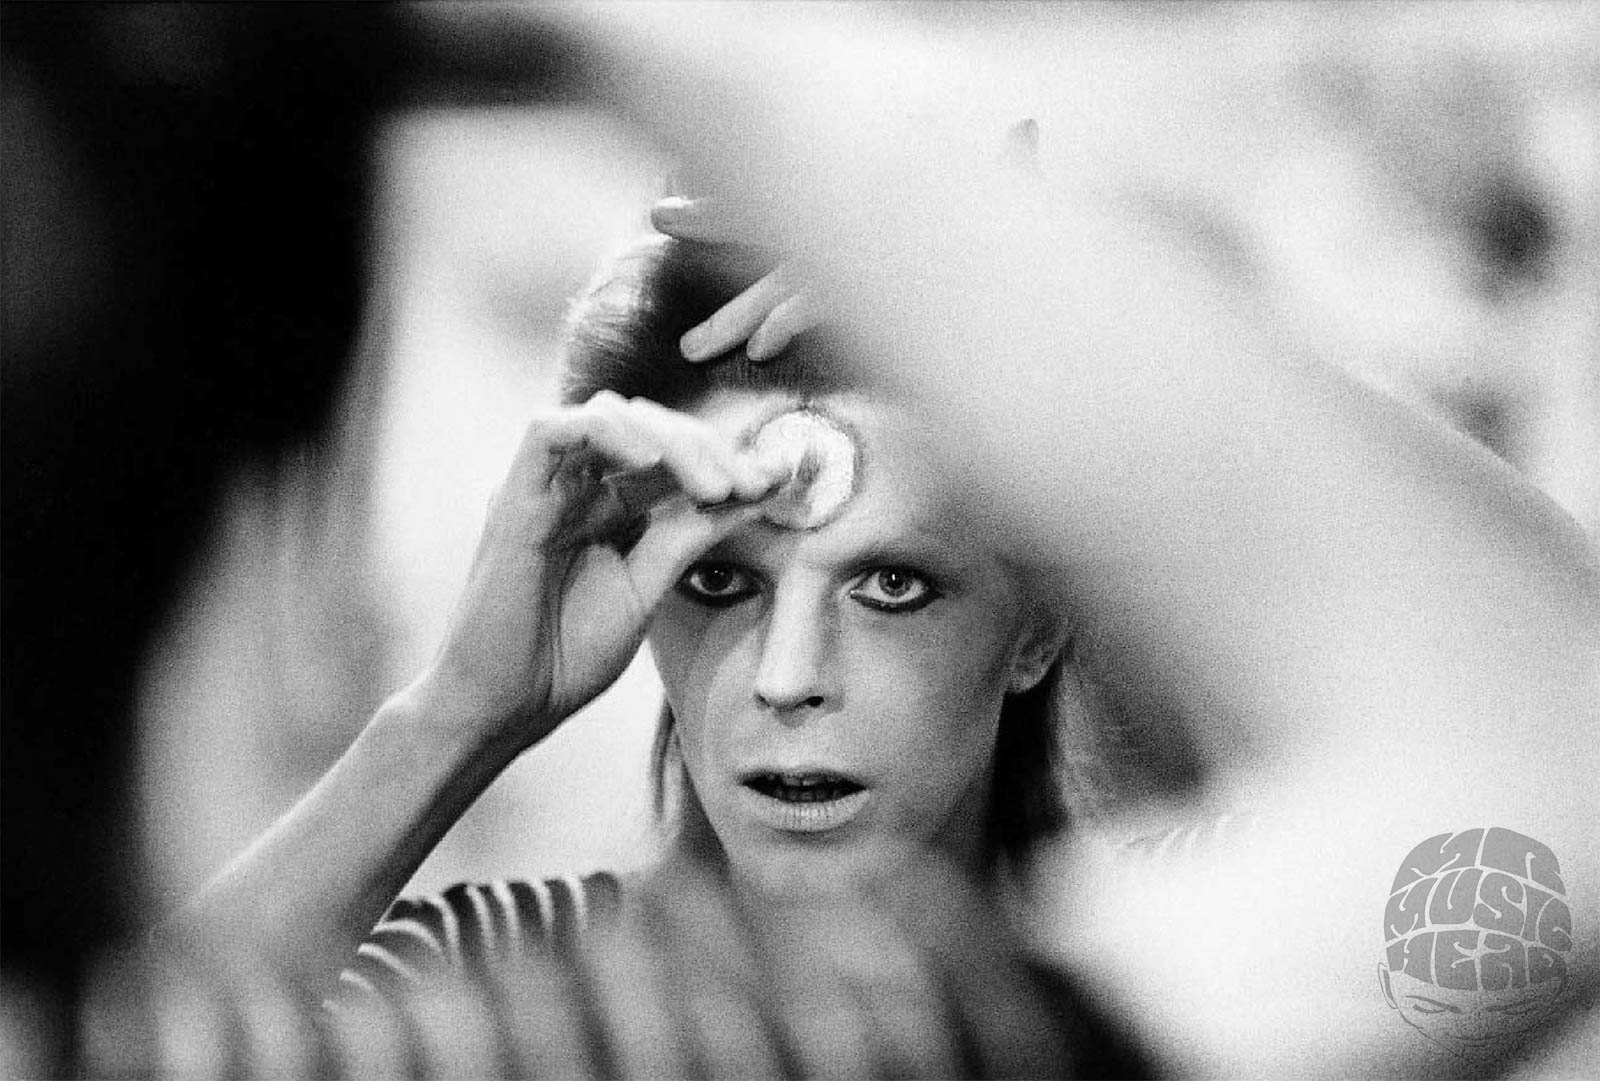 mick rock_david bowie makeup.jpg